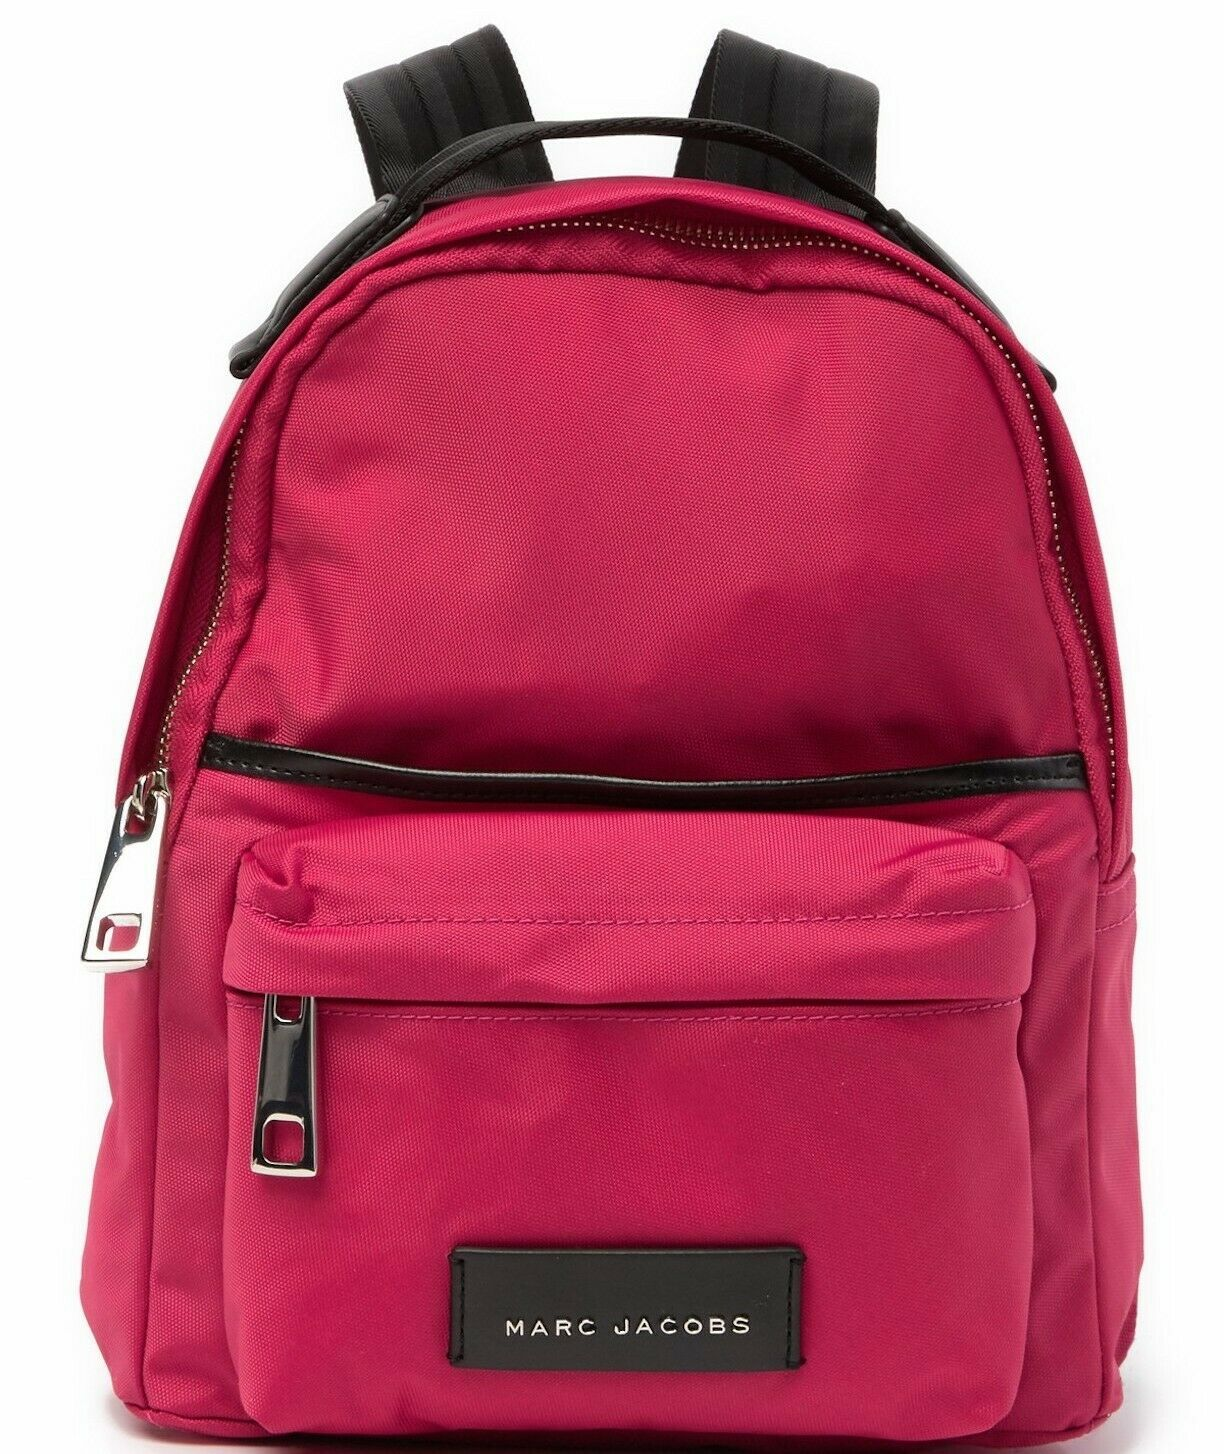 Primary image for Marc Jacobs Backpack Mini Nylon Varsity NEW